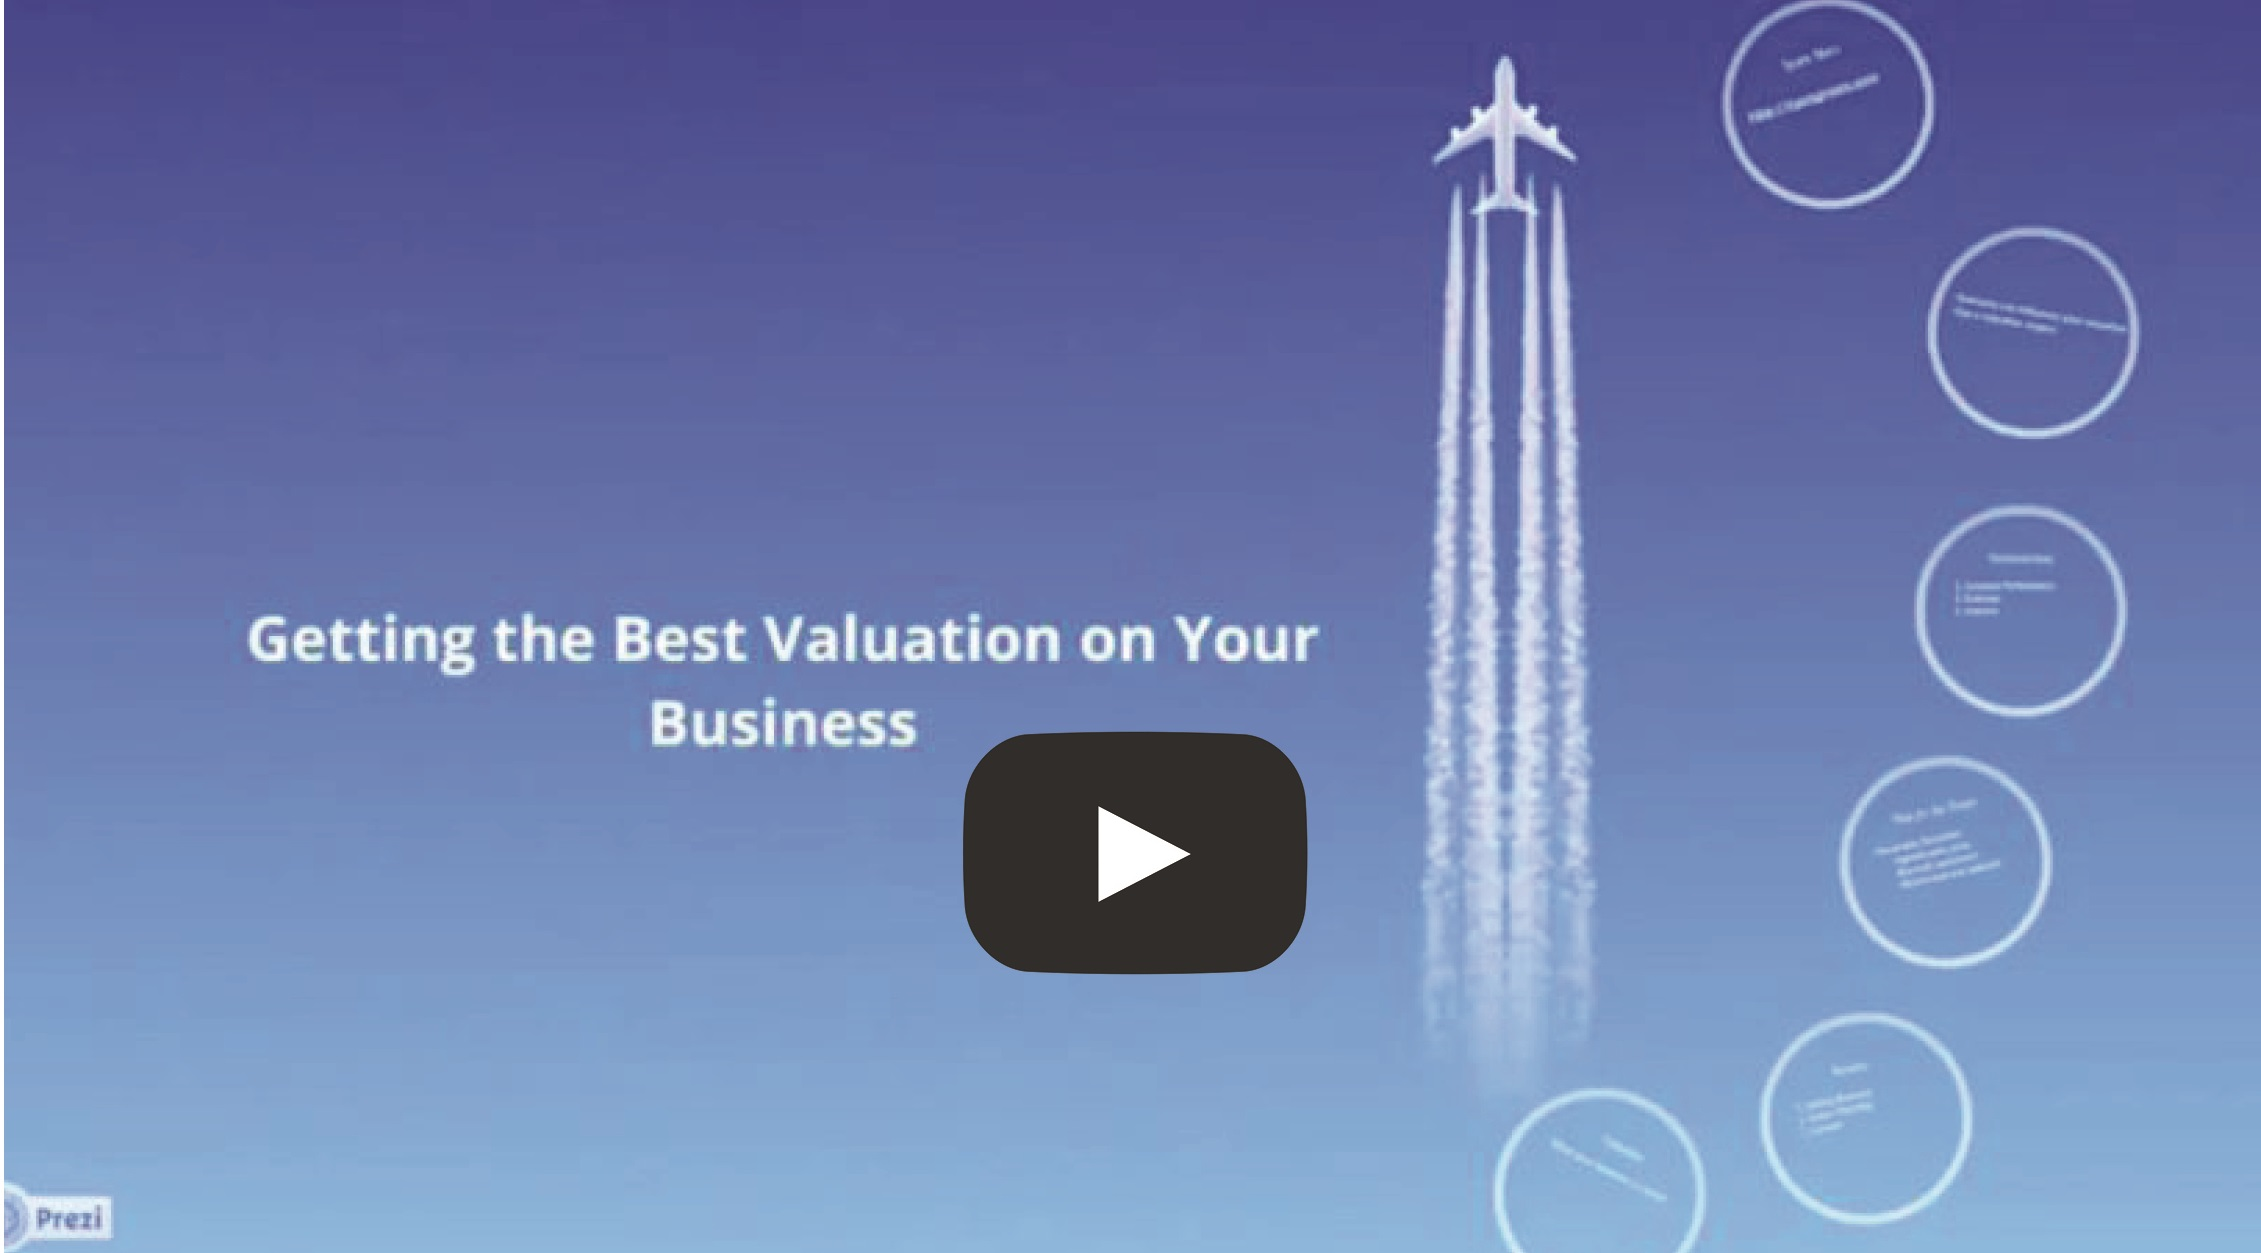 Best Valuation on Your Business